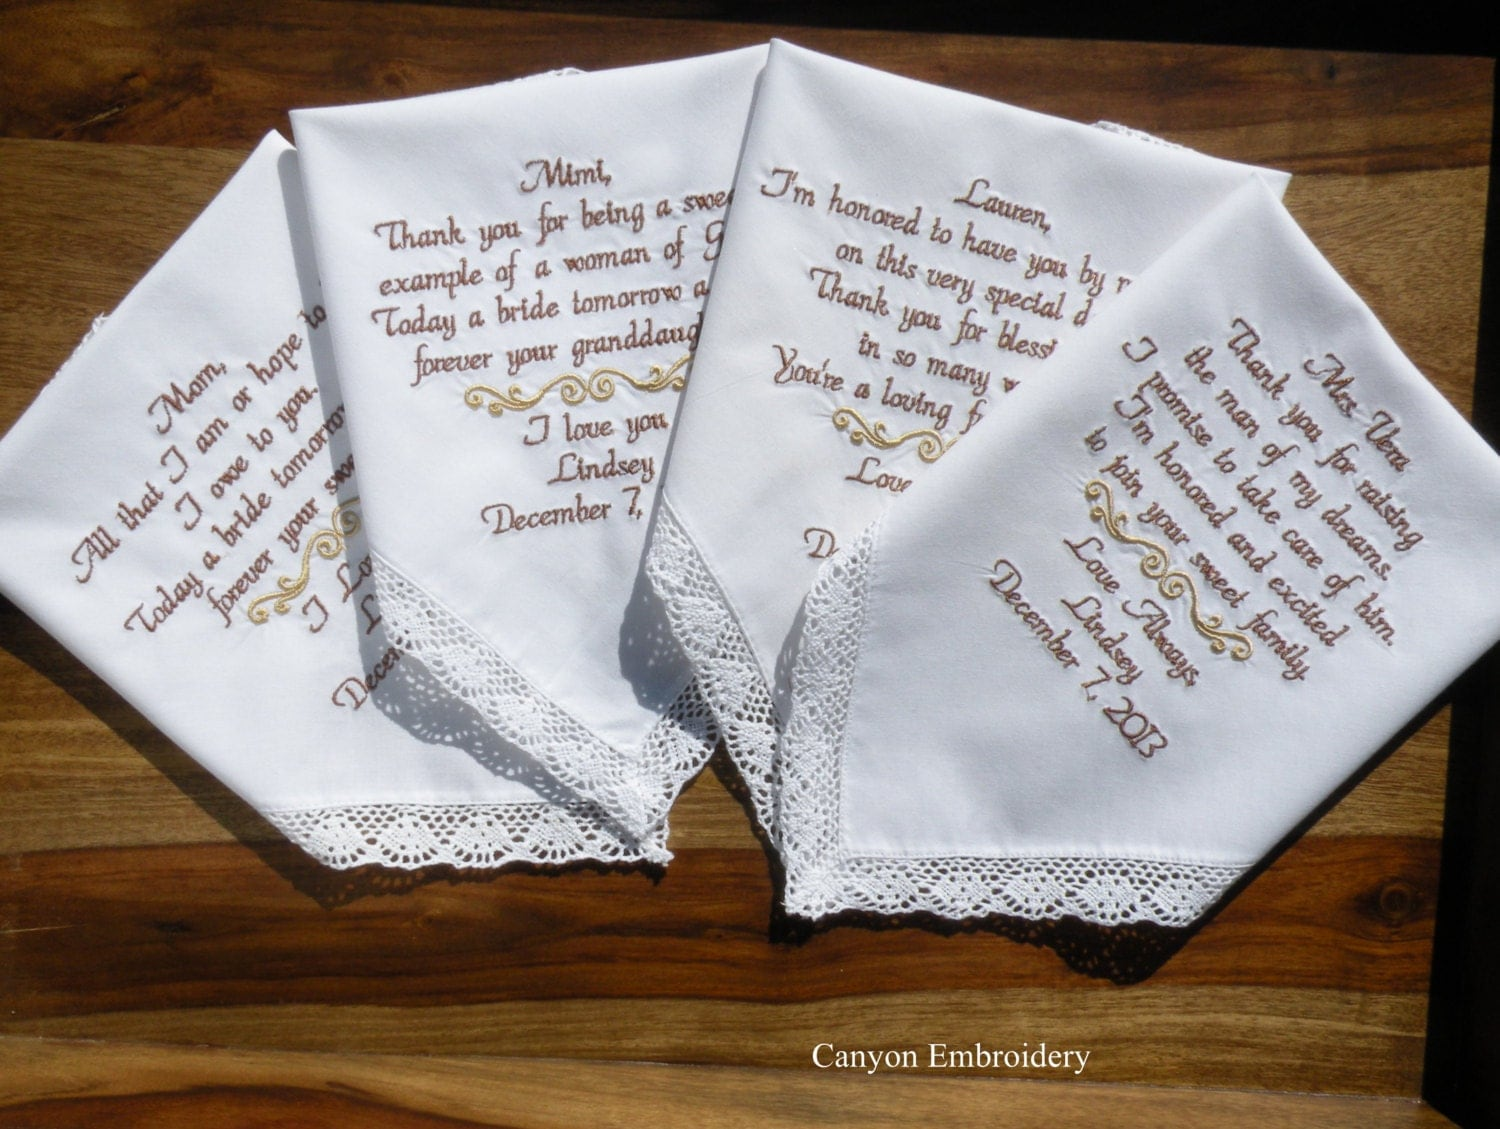 Wedding Gifts For A Bride: Embroidered Wedding Handkerchief Wedding Hankys Gift Mother